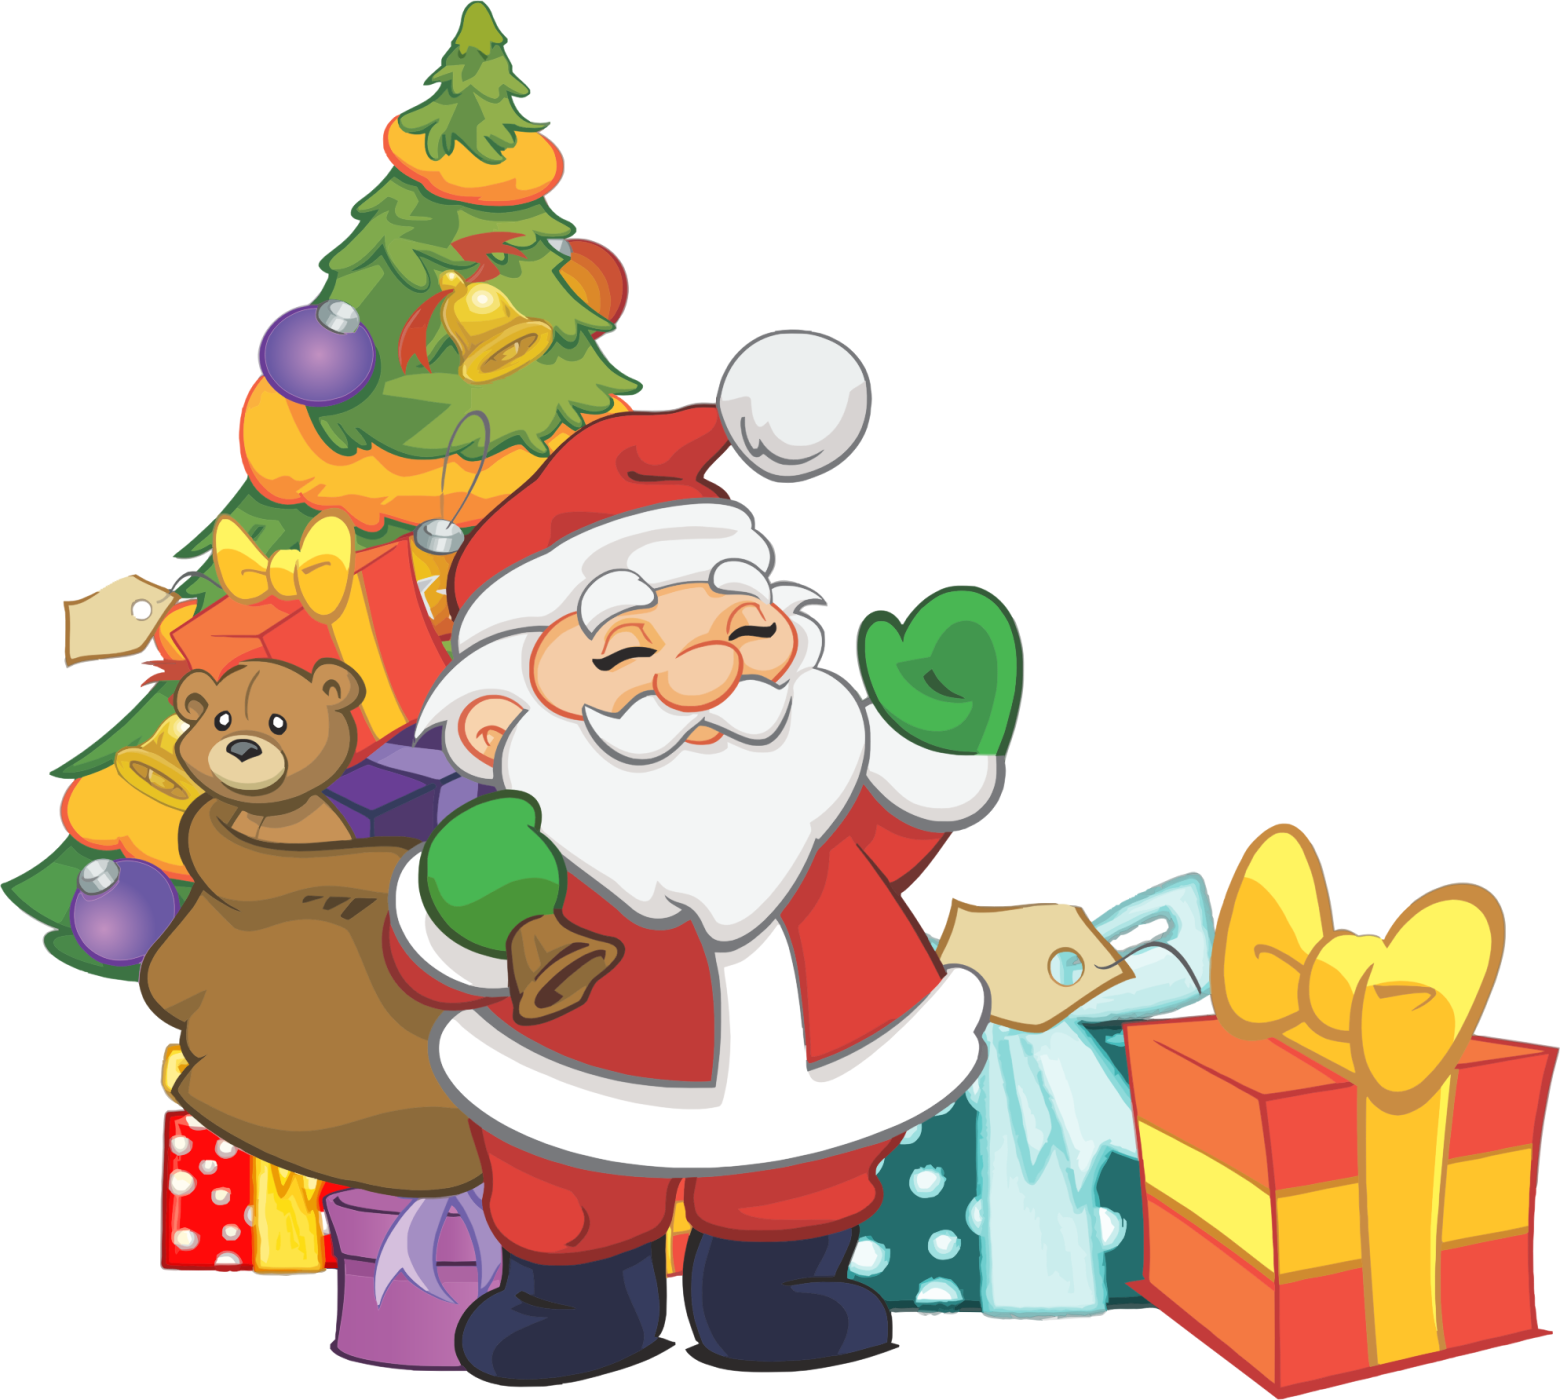 Pere noel clipart 7 » Clipart Station.